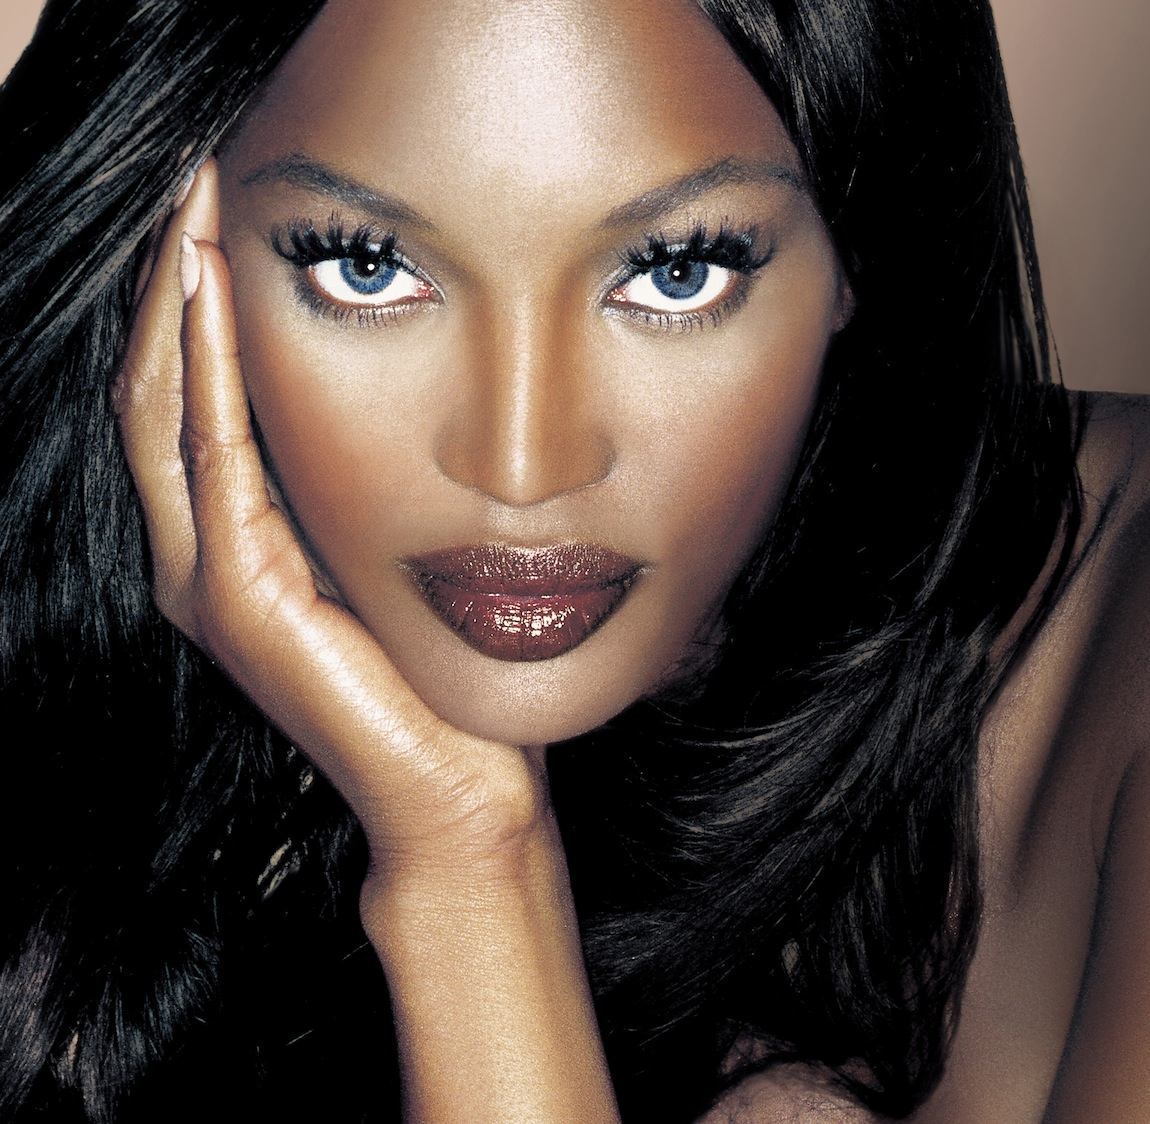 naomi campbell small steps project